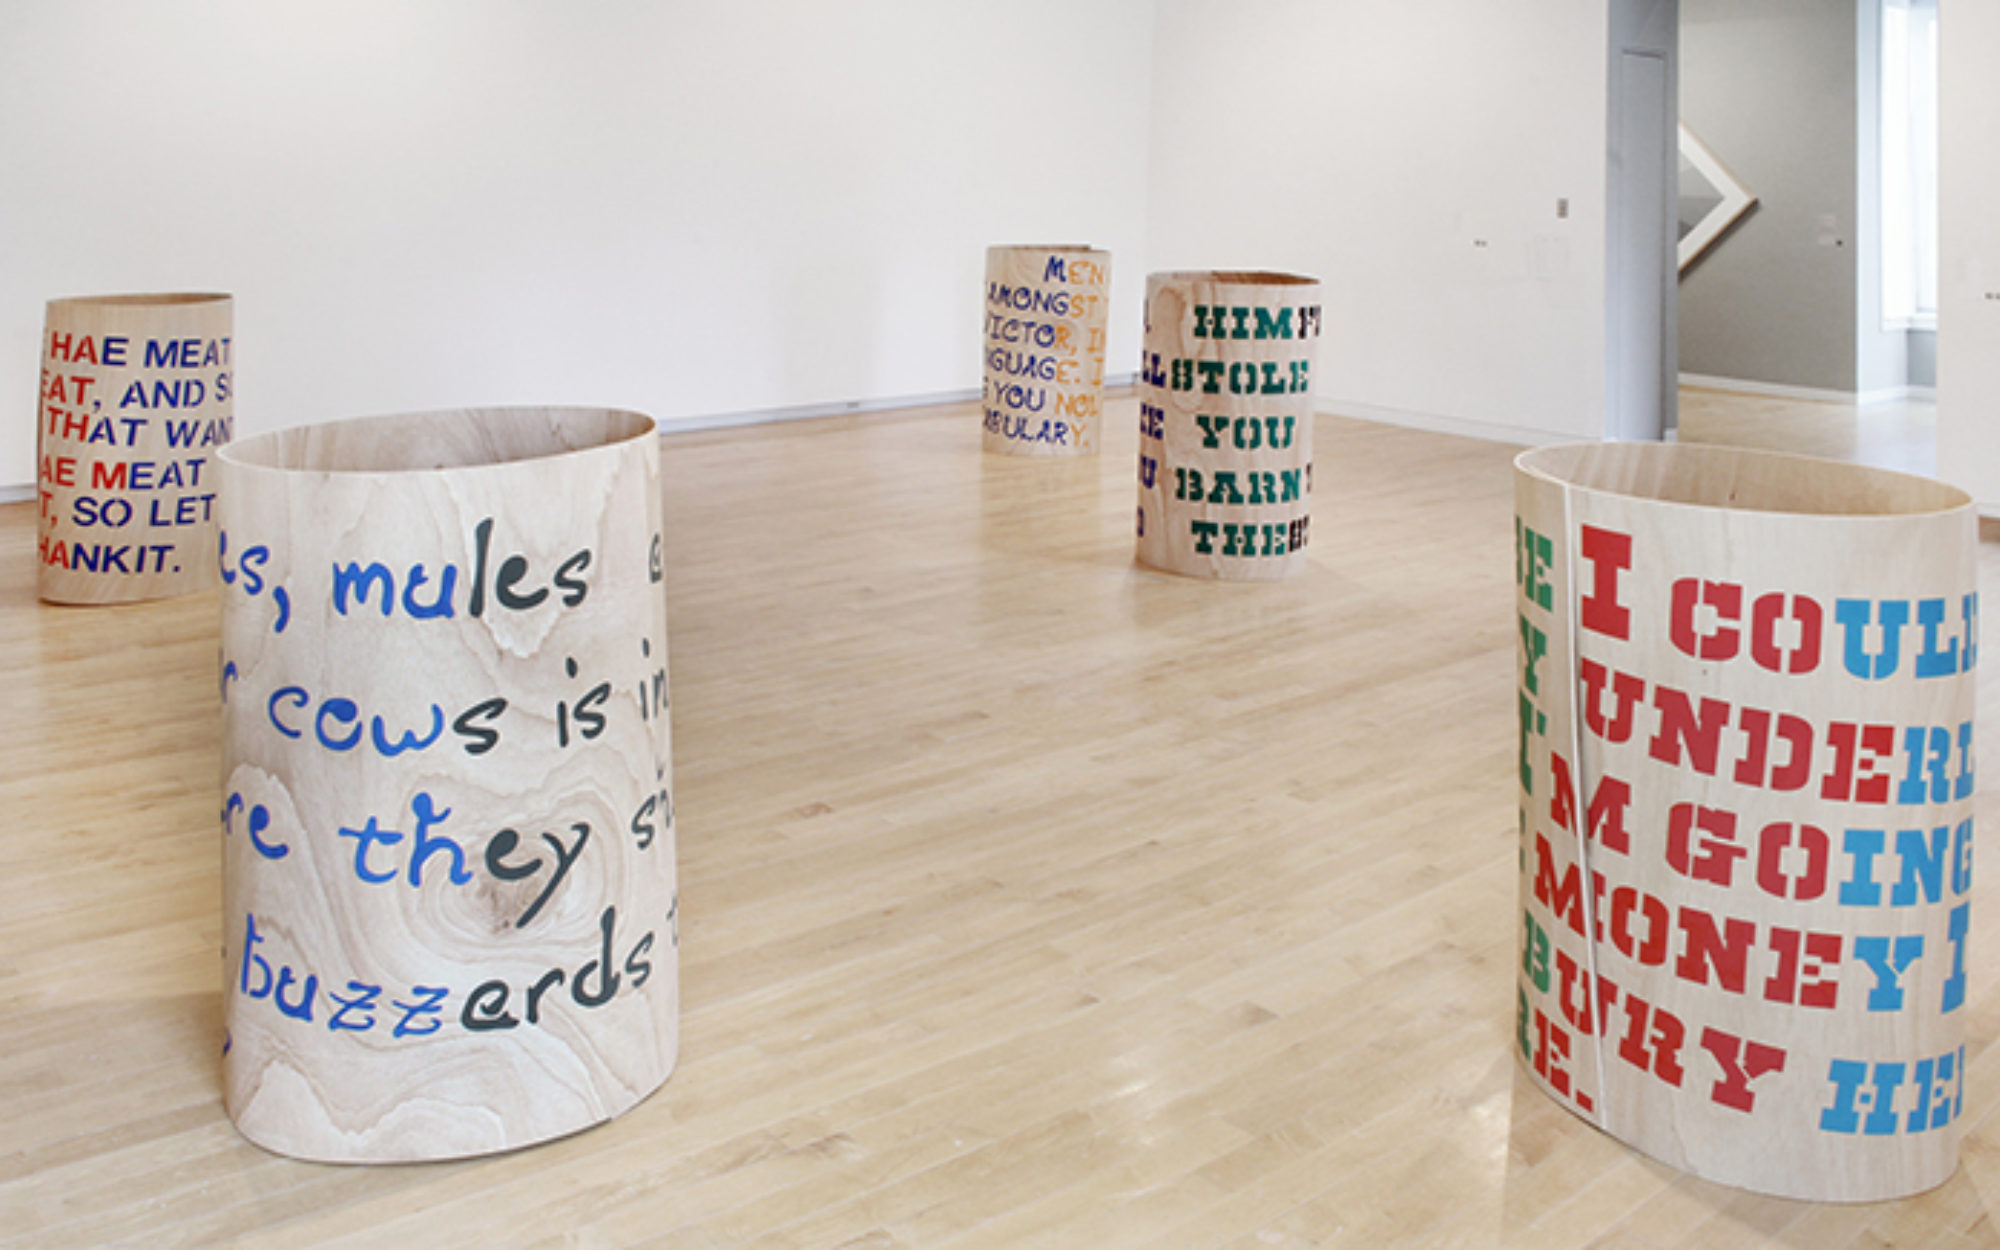 Five circular forms with lettering on them sit on the gallery floor